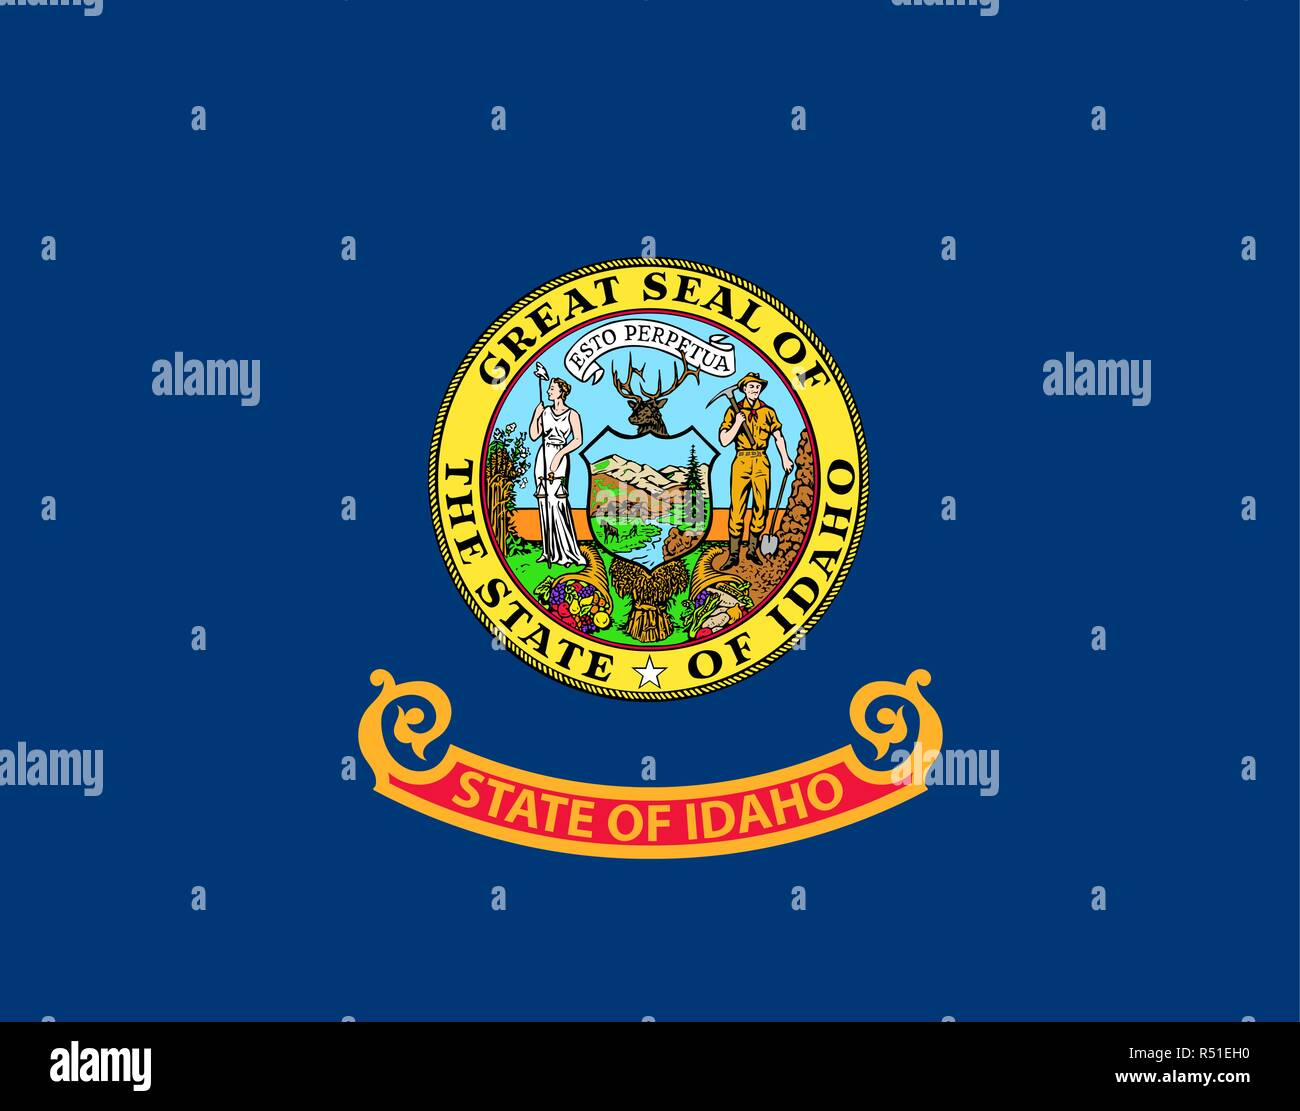 State of Idaho vector flag. Vector illustration. United States of America. - Stock Vector